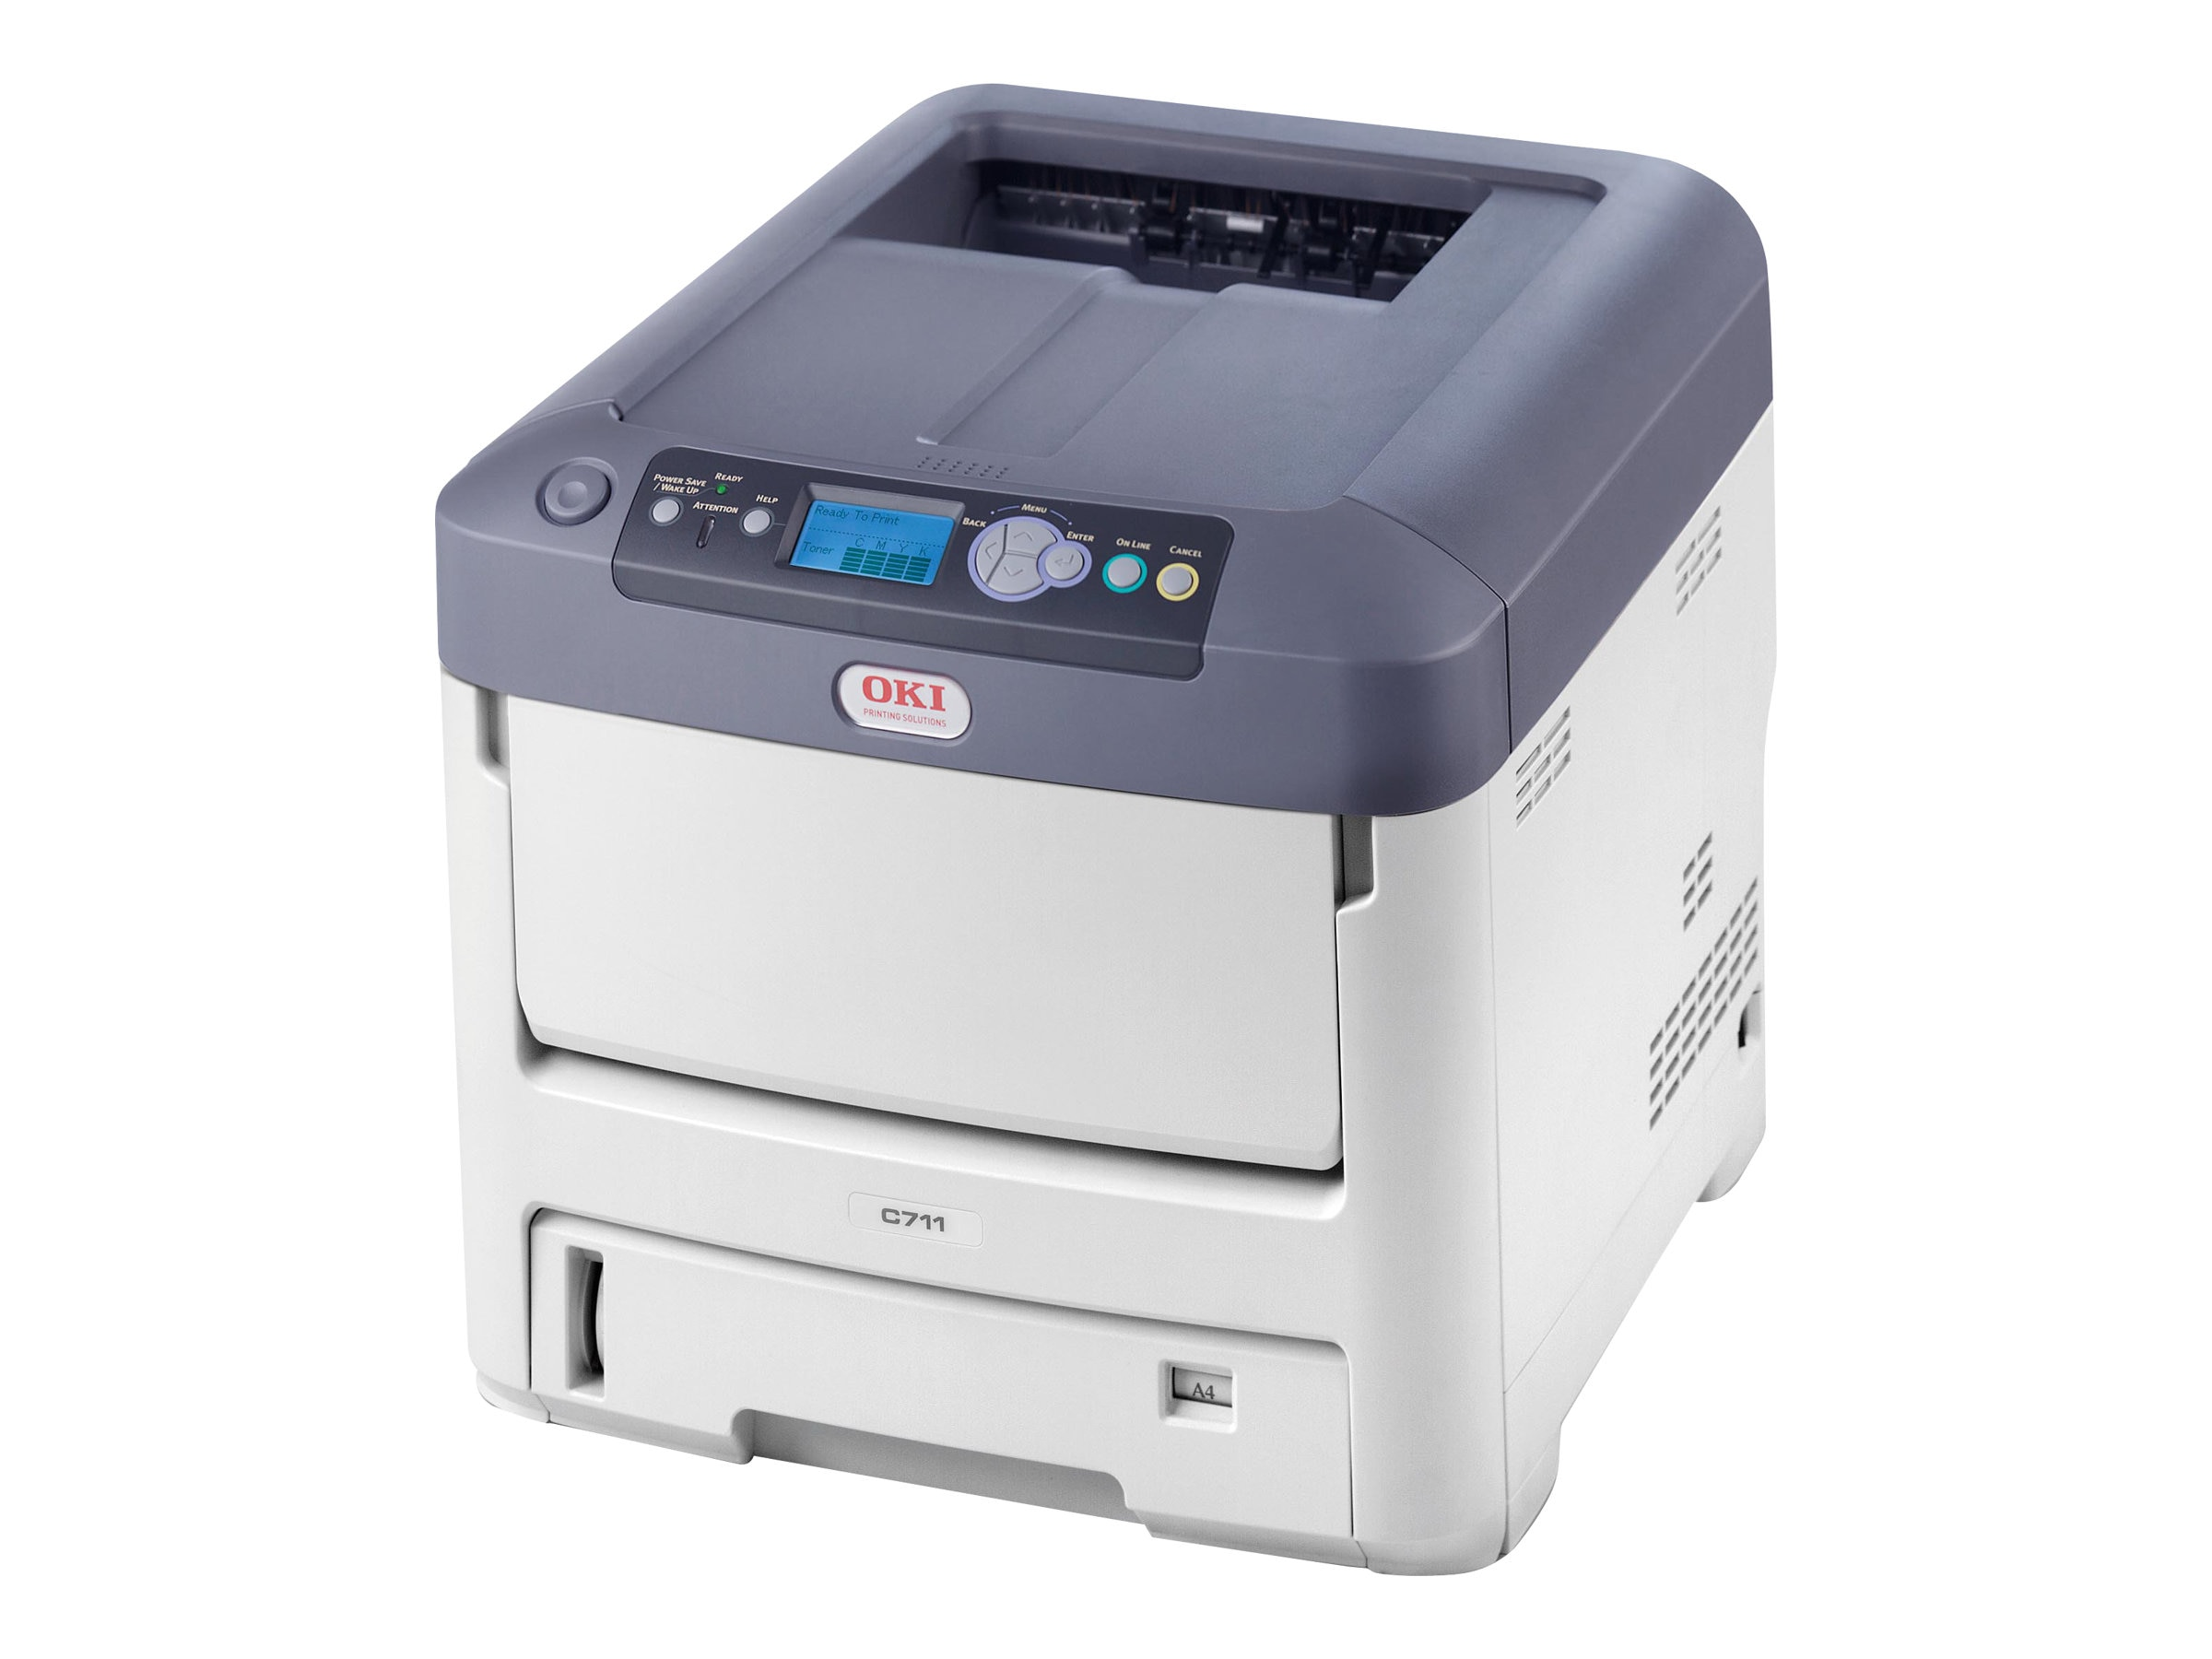 Oki C711n Digital Color Printer - 220V (Mulitilingual)